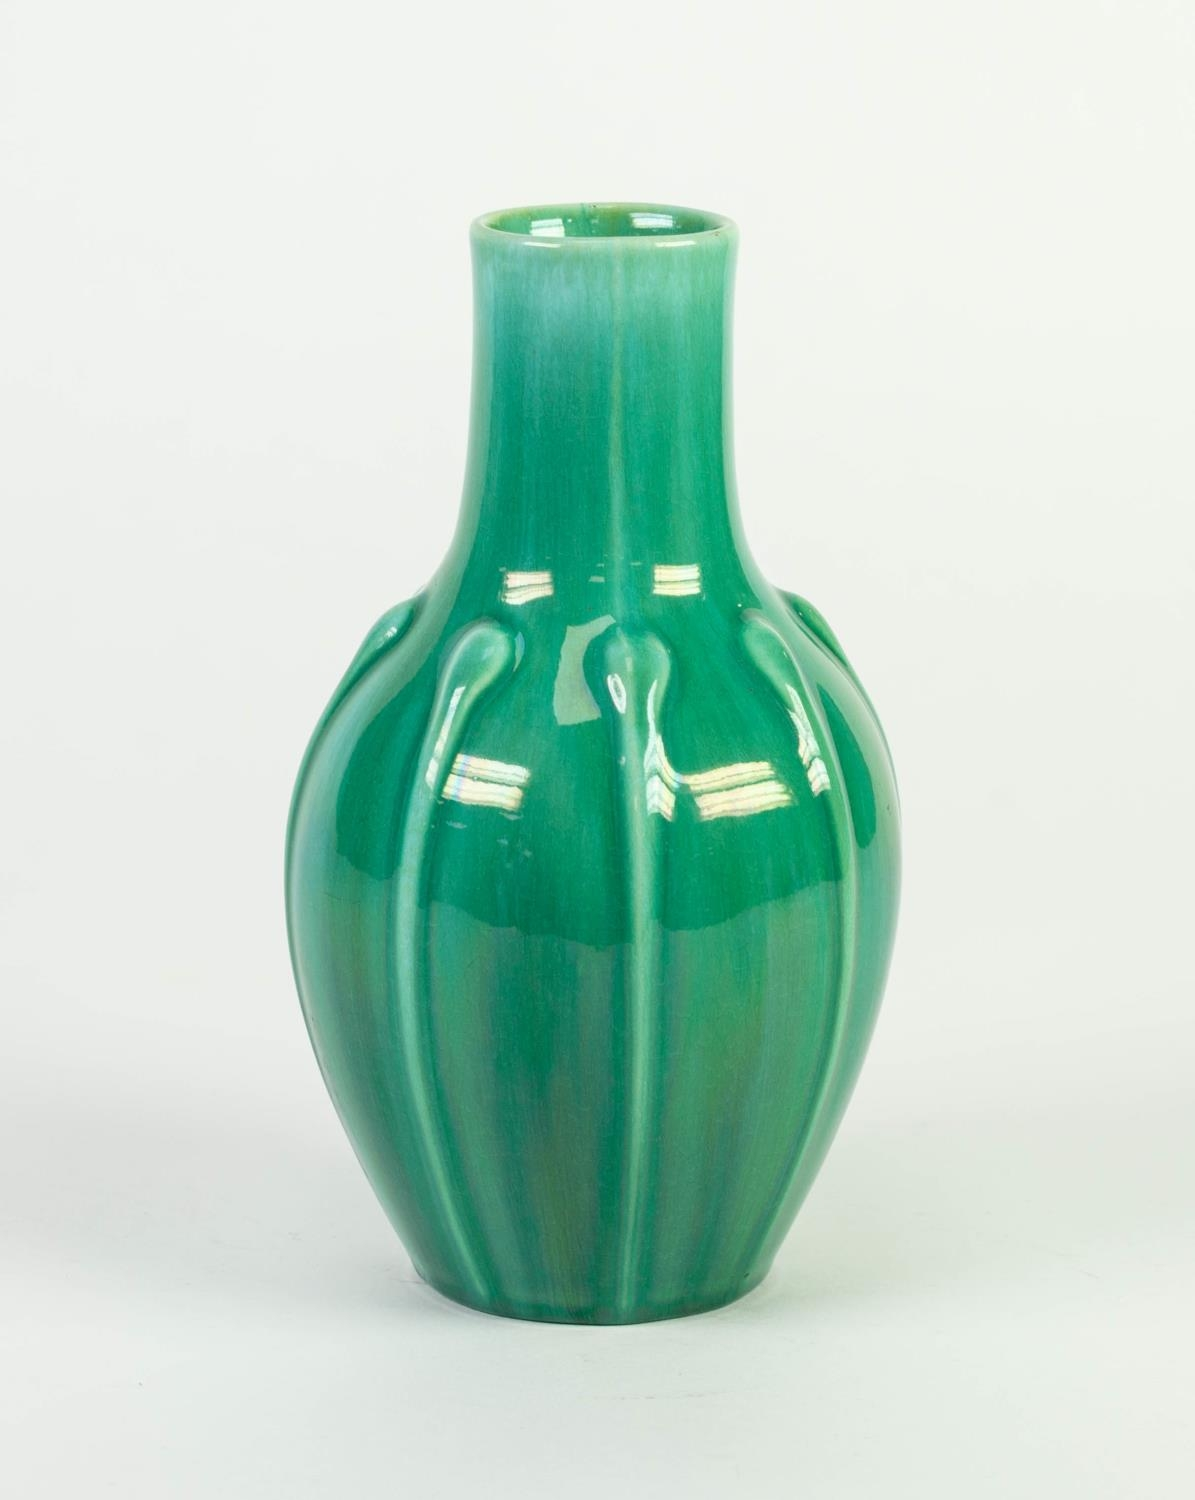 PILKINGTONS GREEN VEINED OPALESCENT GLAZED MOULDED POTTERY VASE, of ovoid form with slightly - Image 2 of 3